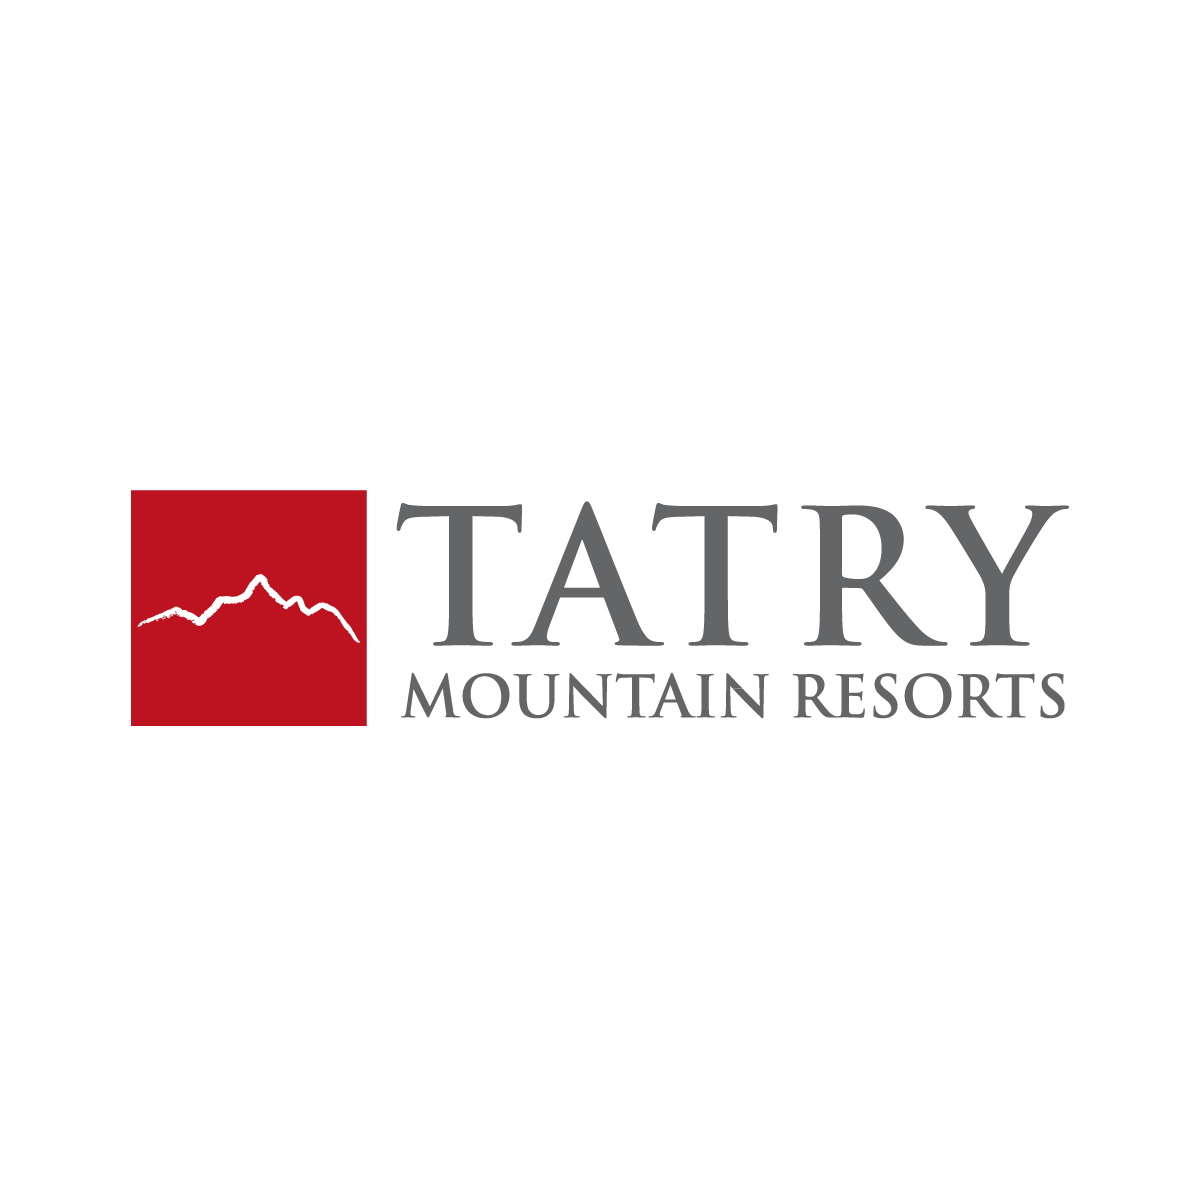 Client Tatry Mountain Resorts